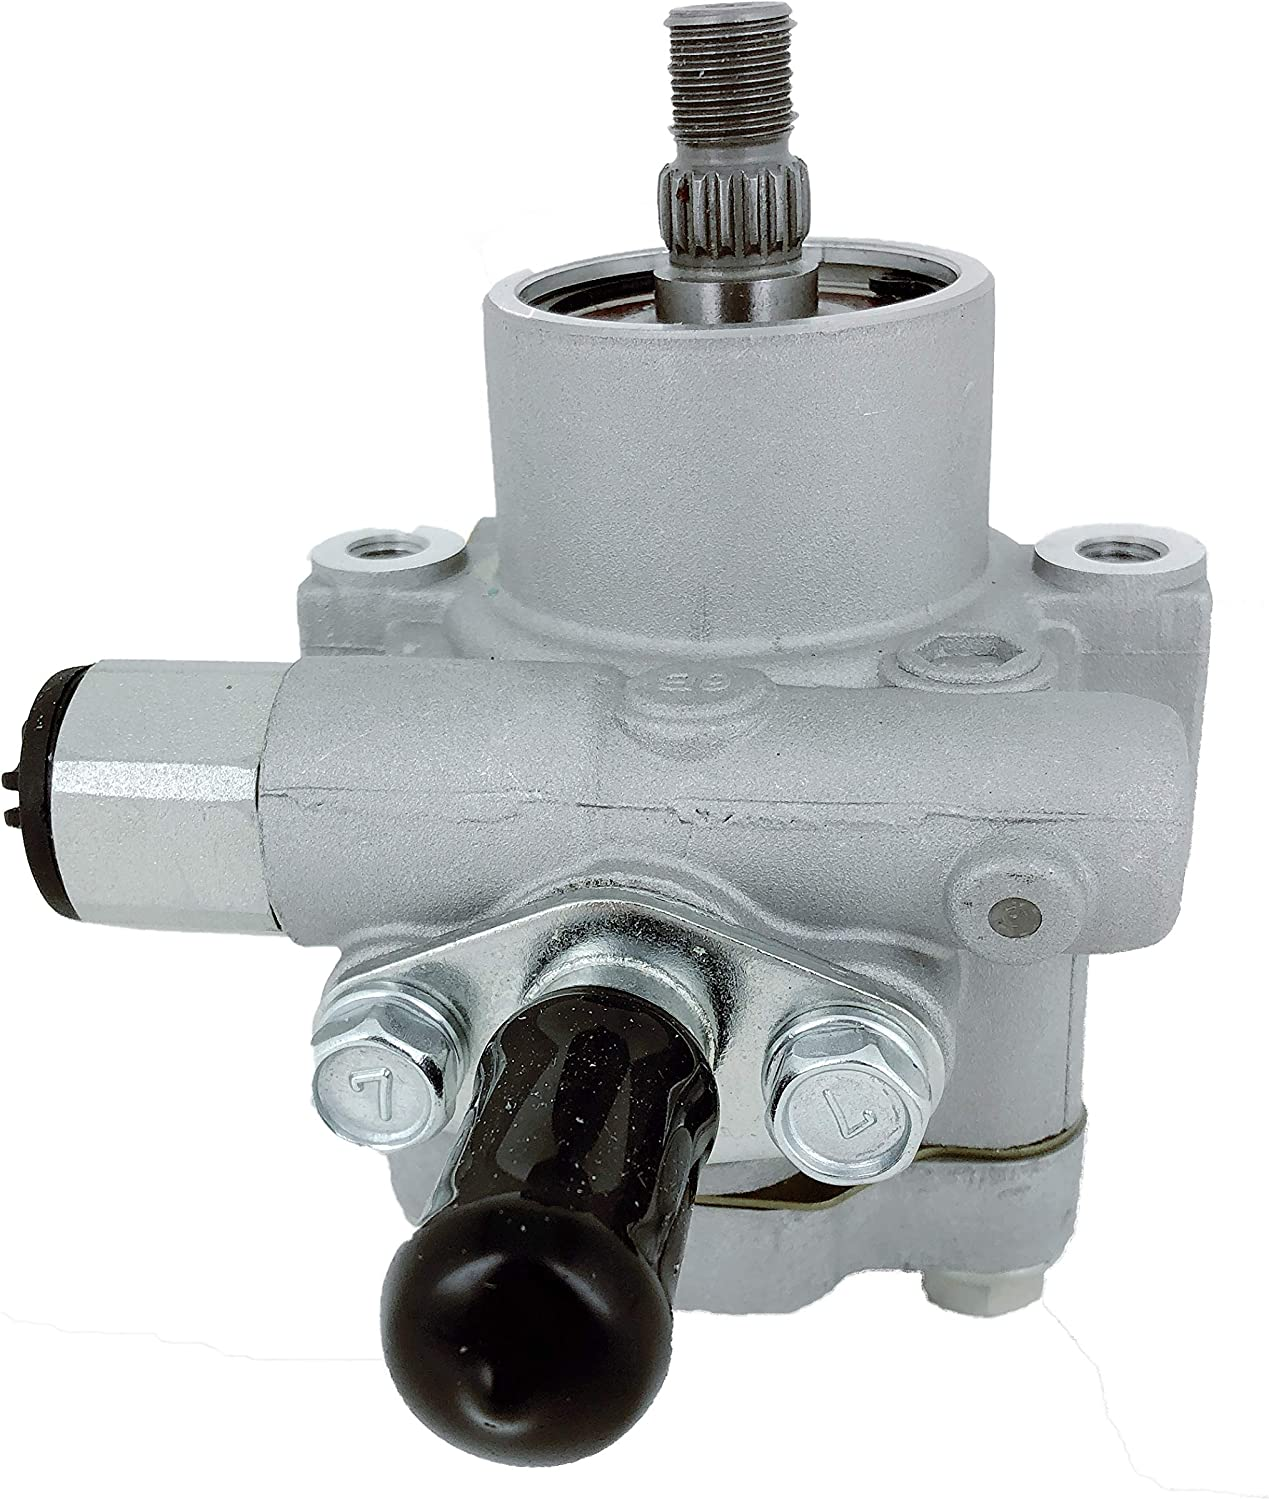 Well Auto 21-5217 New Power Steering Pump with Sensor 98-11 Frontier 2.4L 99-99 NP300 2.4L 00-04 Xterra 4 CYL